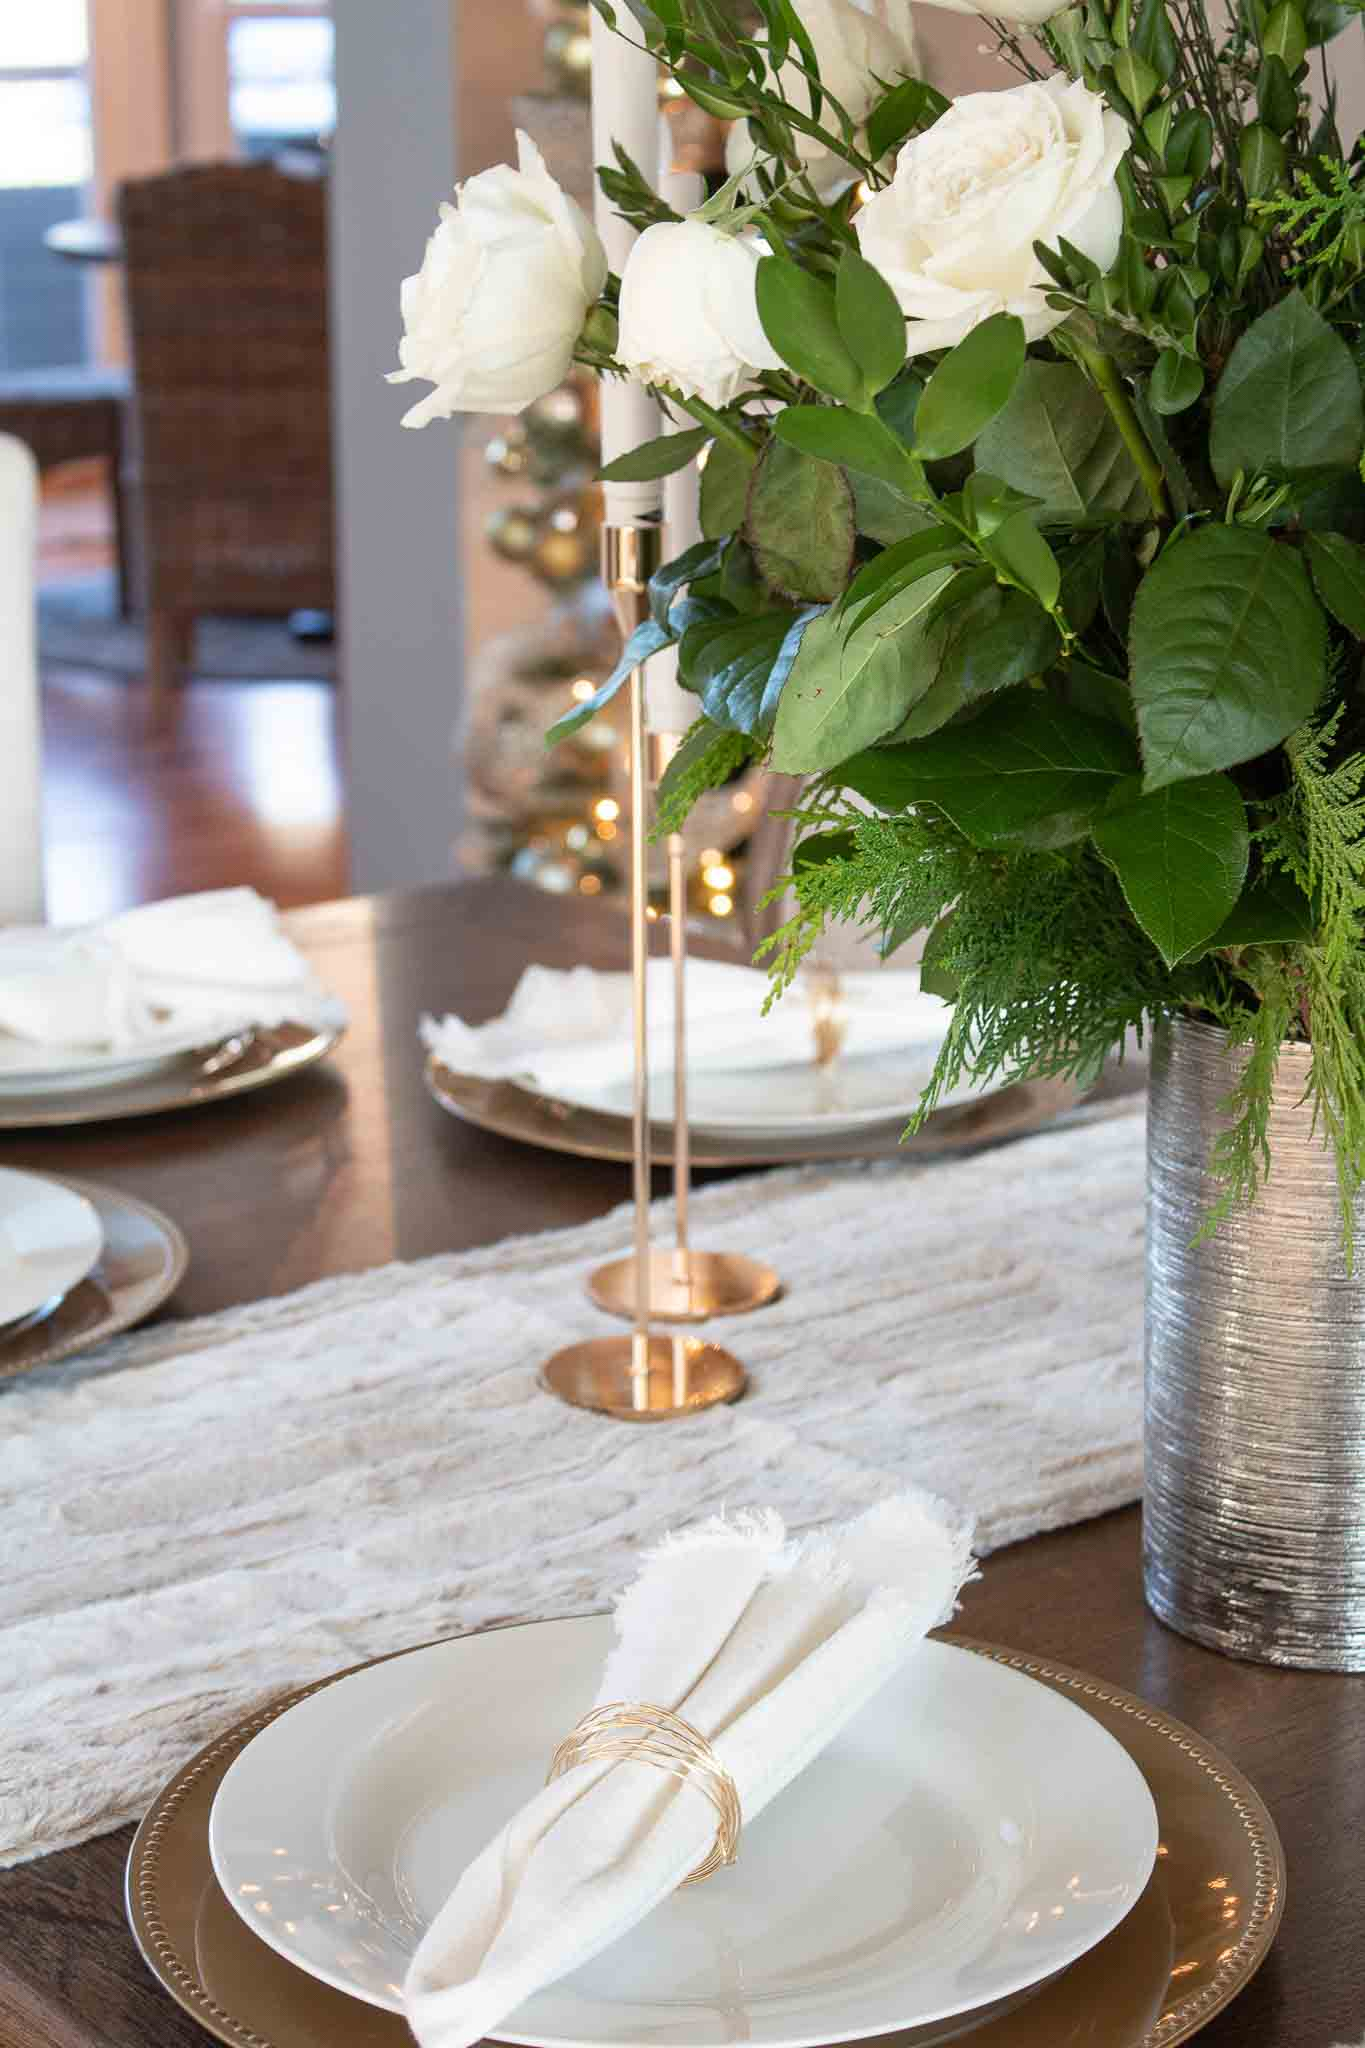 9 Ideas for Budget Holiday Décor – Our Christmas Dining Room Reveal